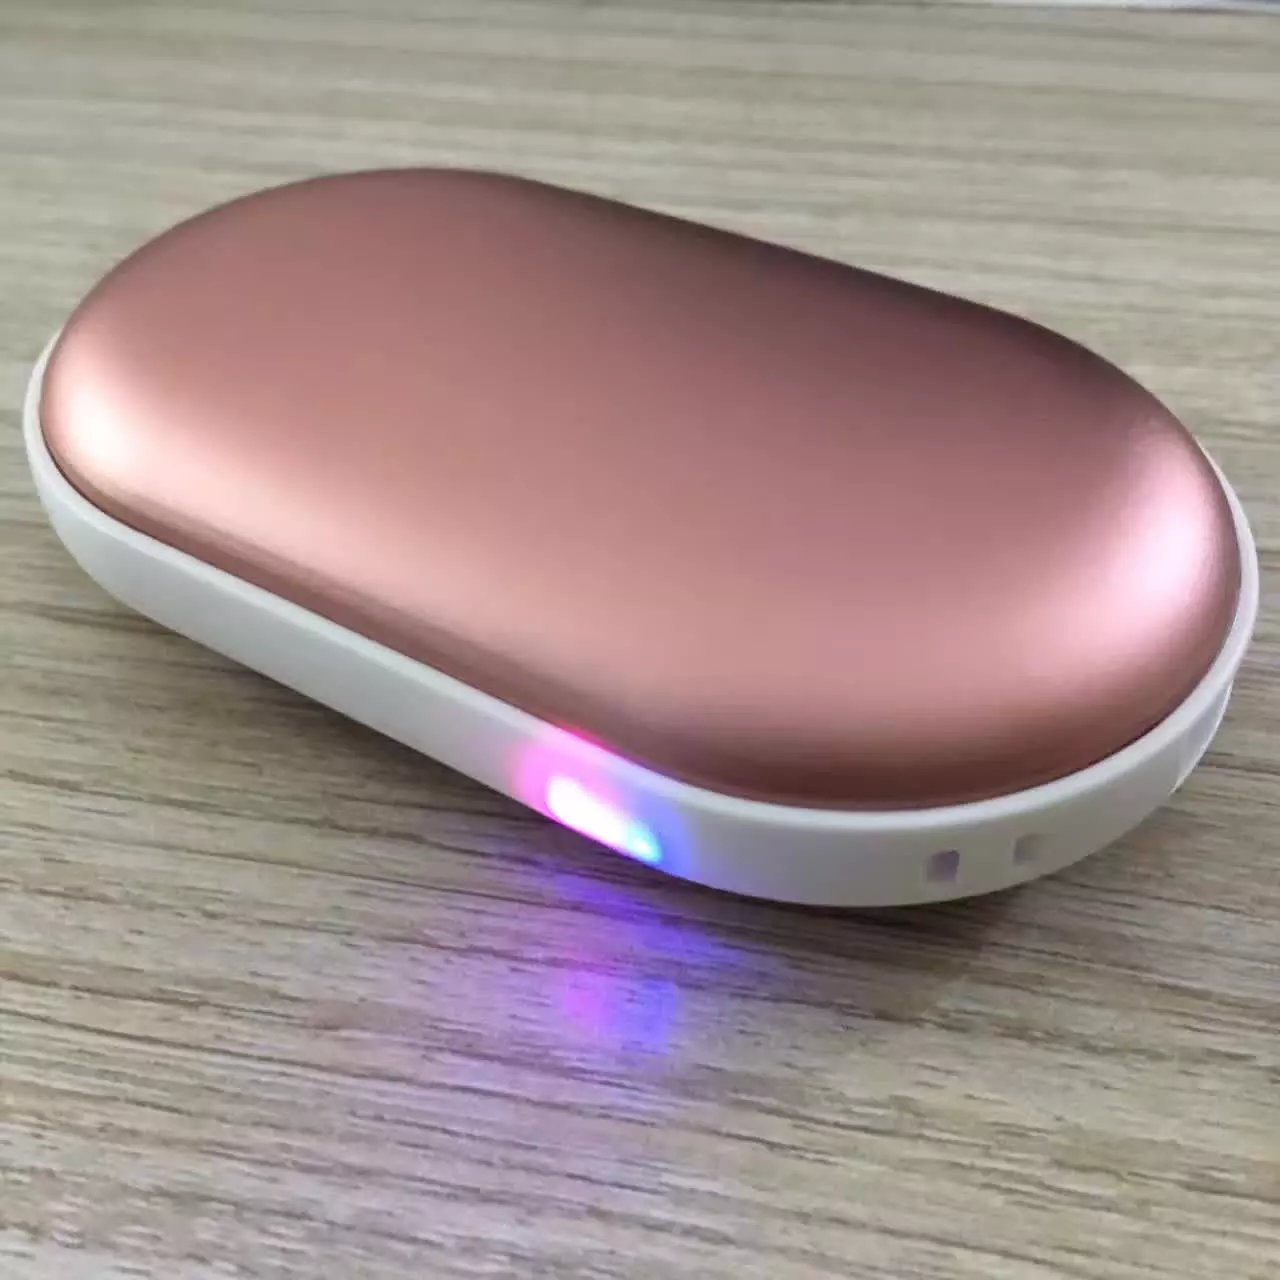 power bank 5600mAh heating handwarmer power bank for smartphone mobile phone